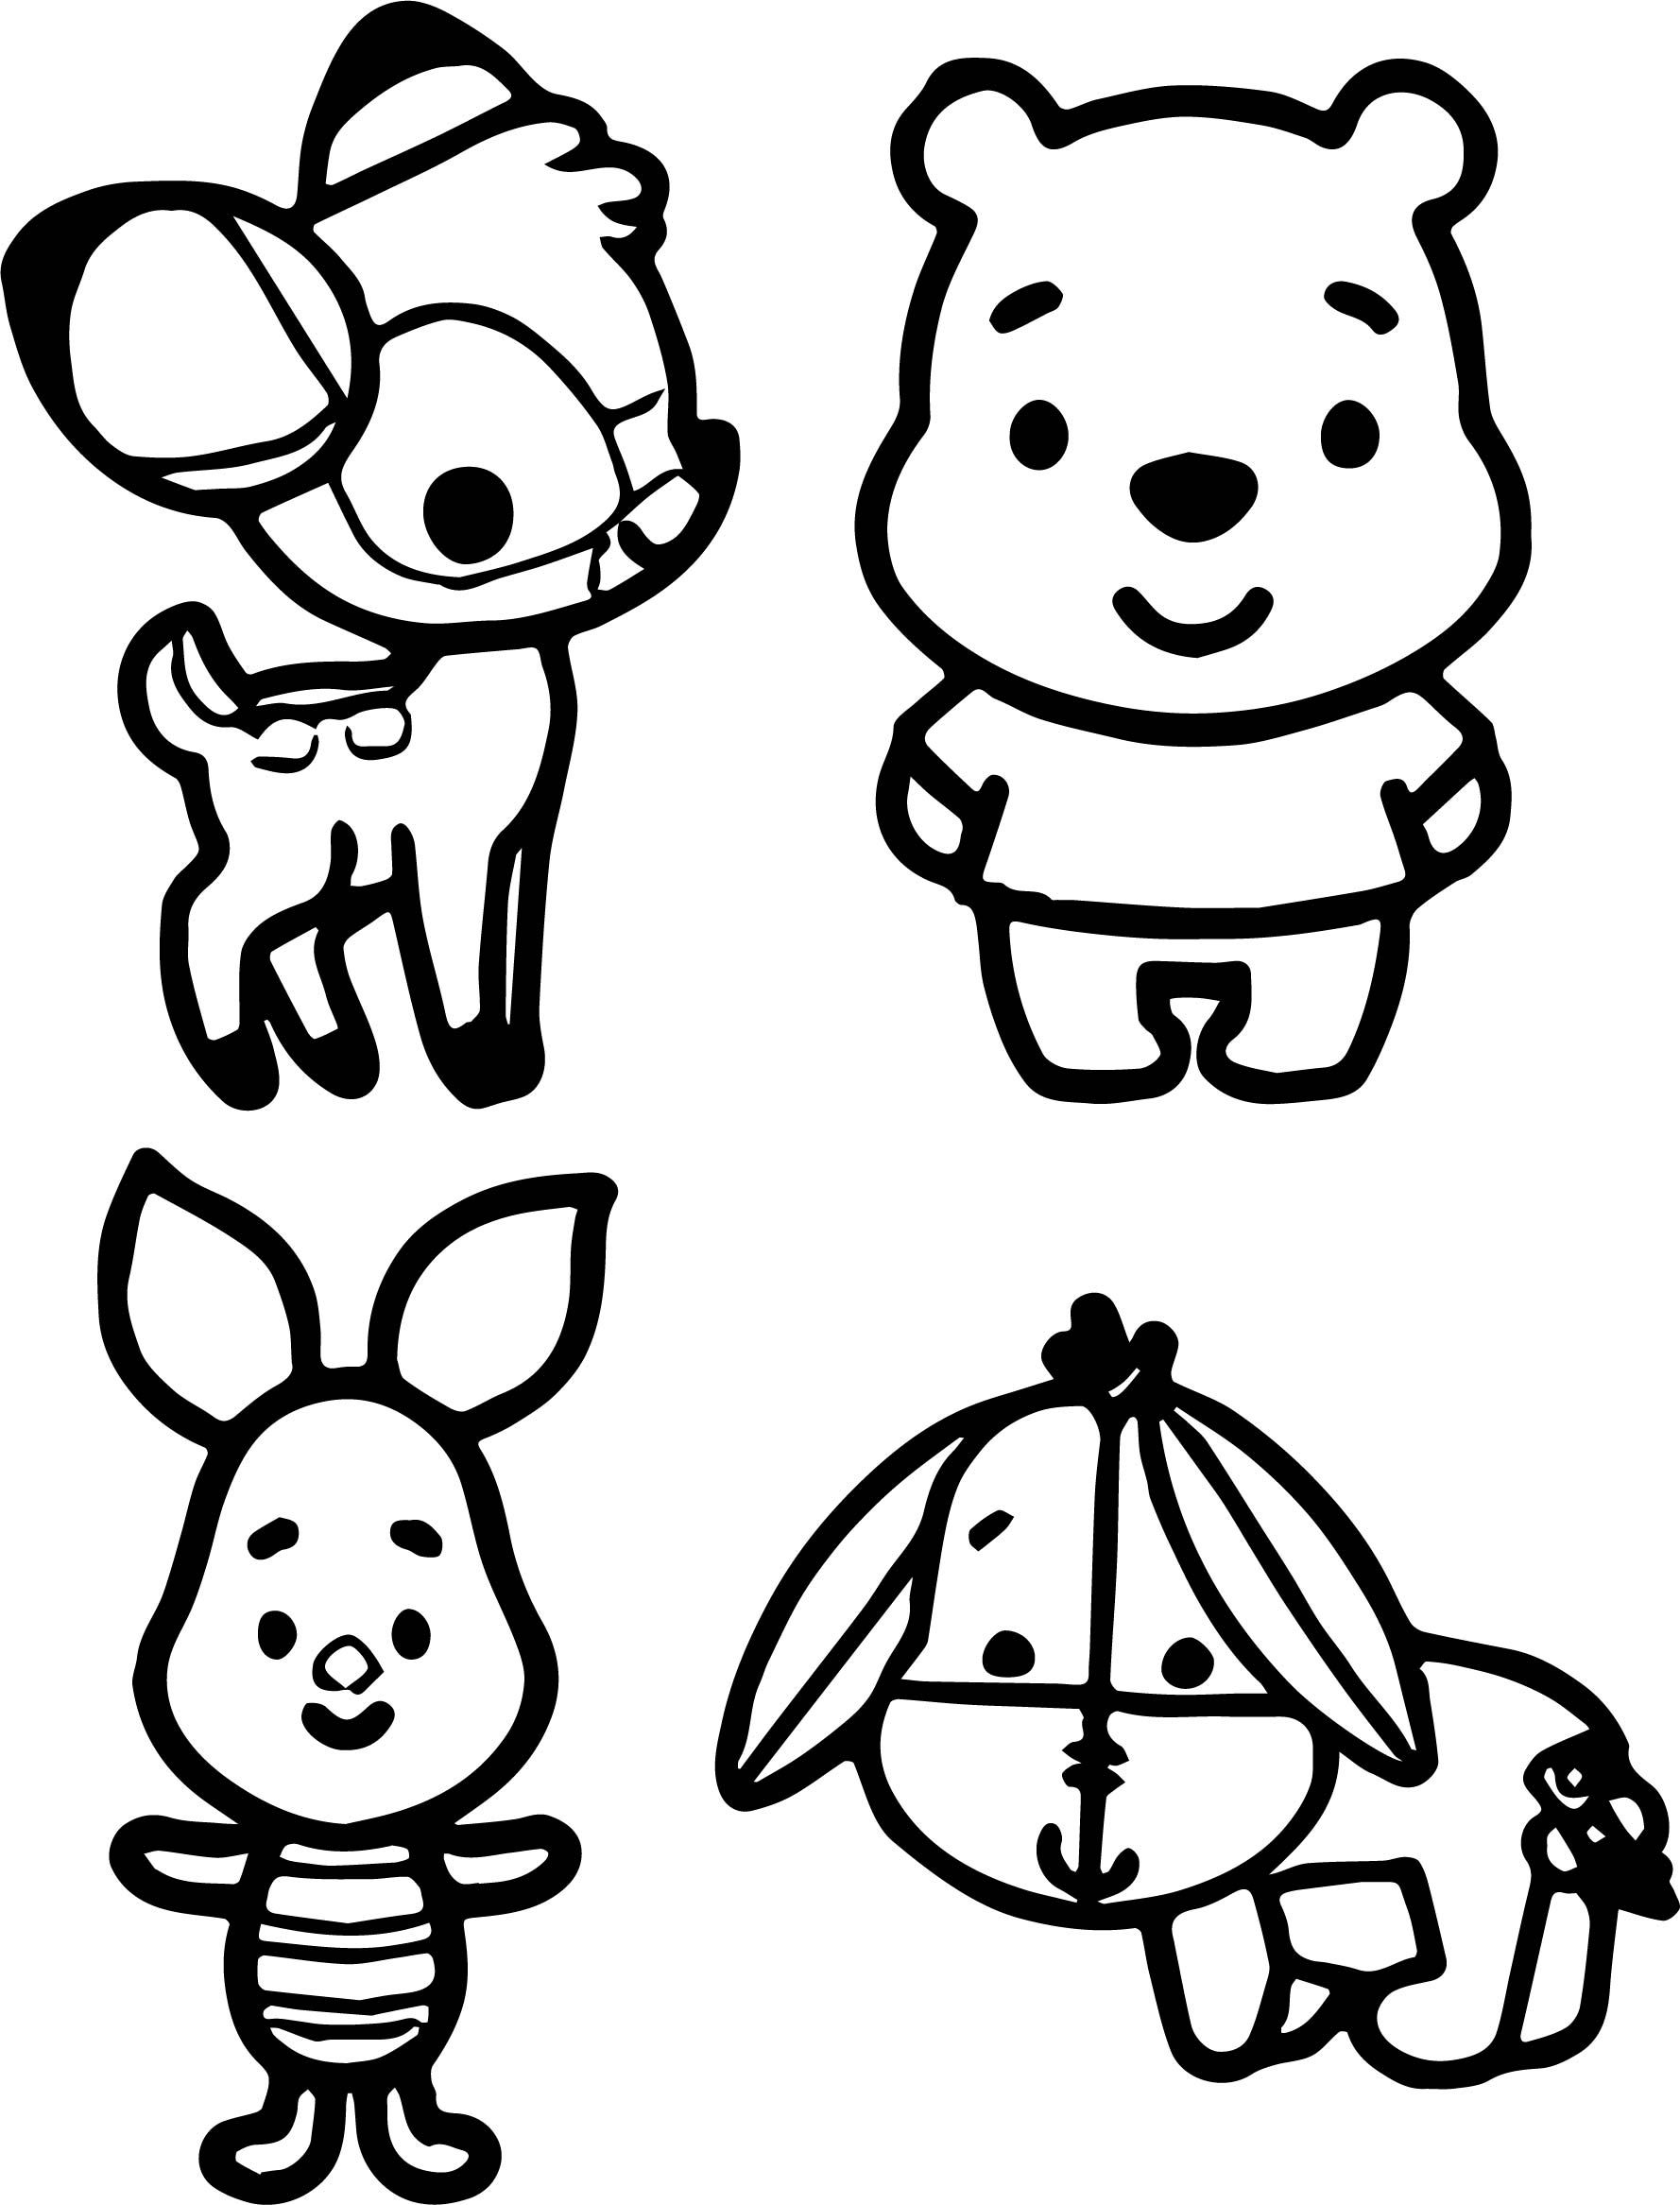 Baby Winnie The Pooh Coloring Pages Winnie The Pooh Drawing Baby Coloring Pages Disney Coloring Pages